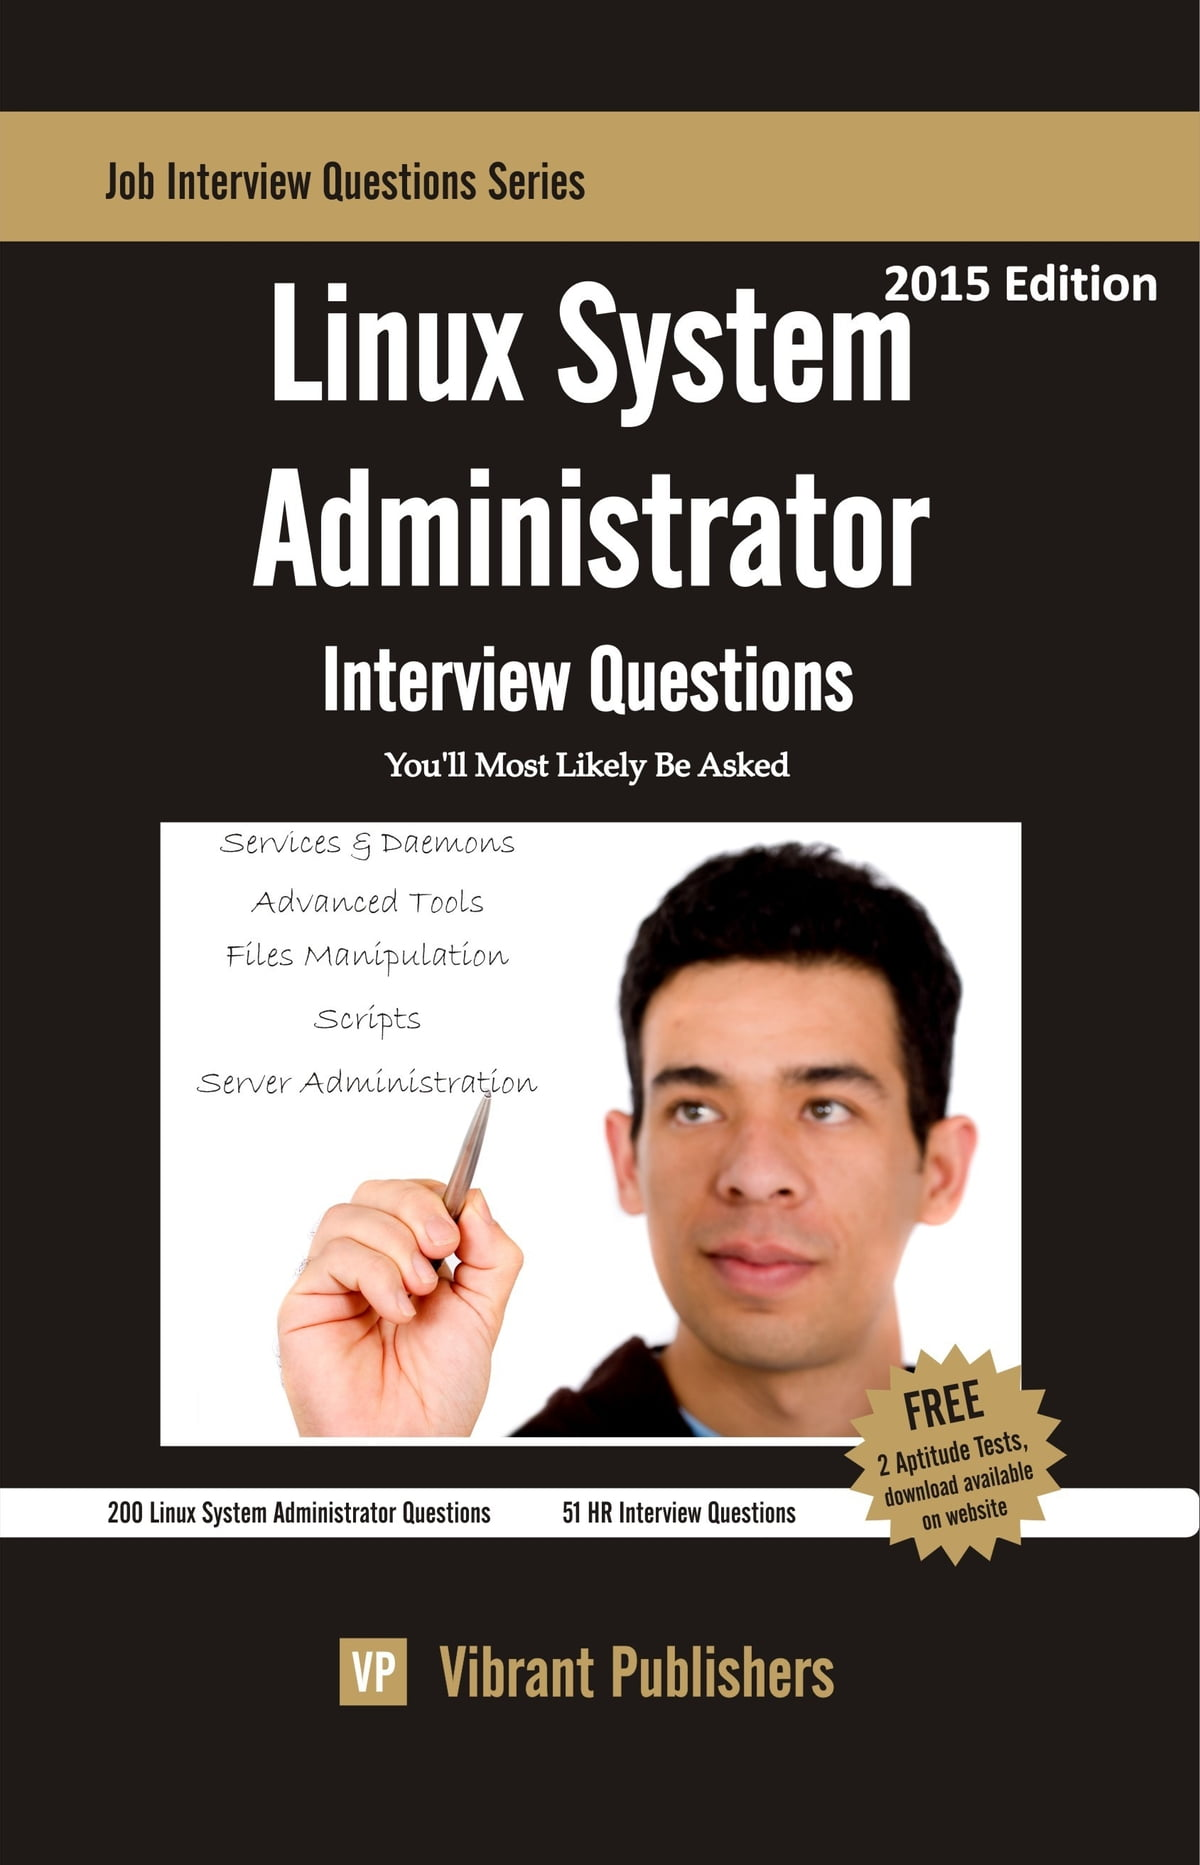 linux system administrator interview questions you ll most likely linux system administrator interview questions you ll most likely be asked ebook by vibrant publishers 9781466110366 kobo